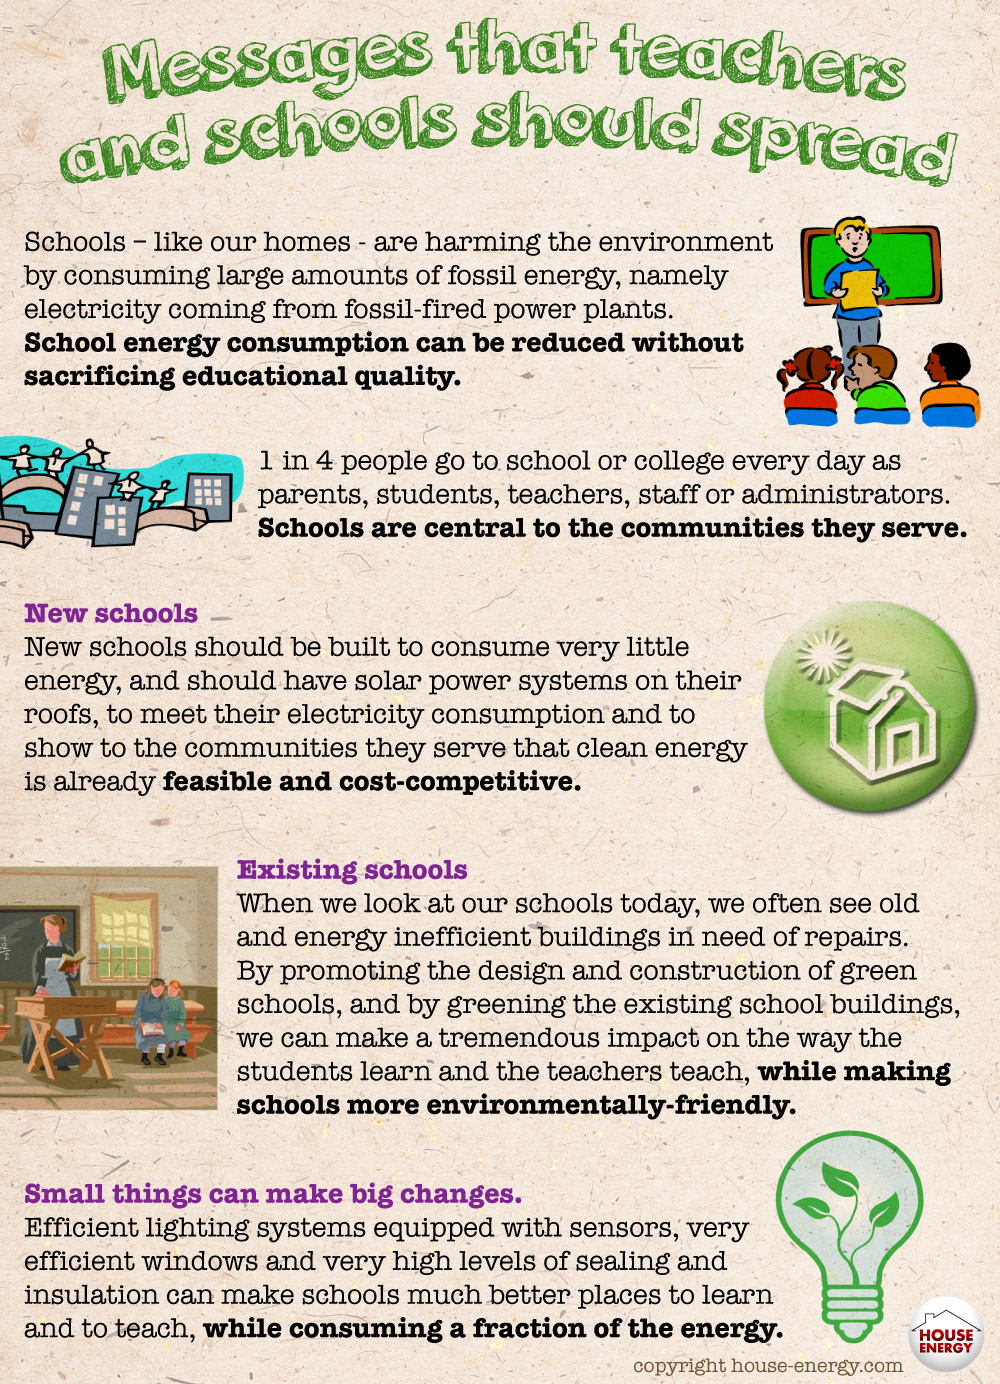 Messages that teachers should spread about green construction